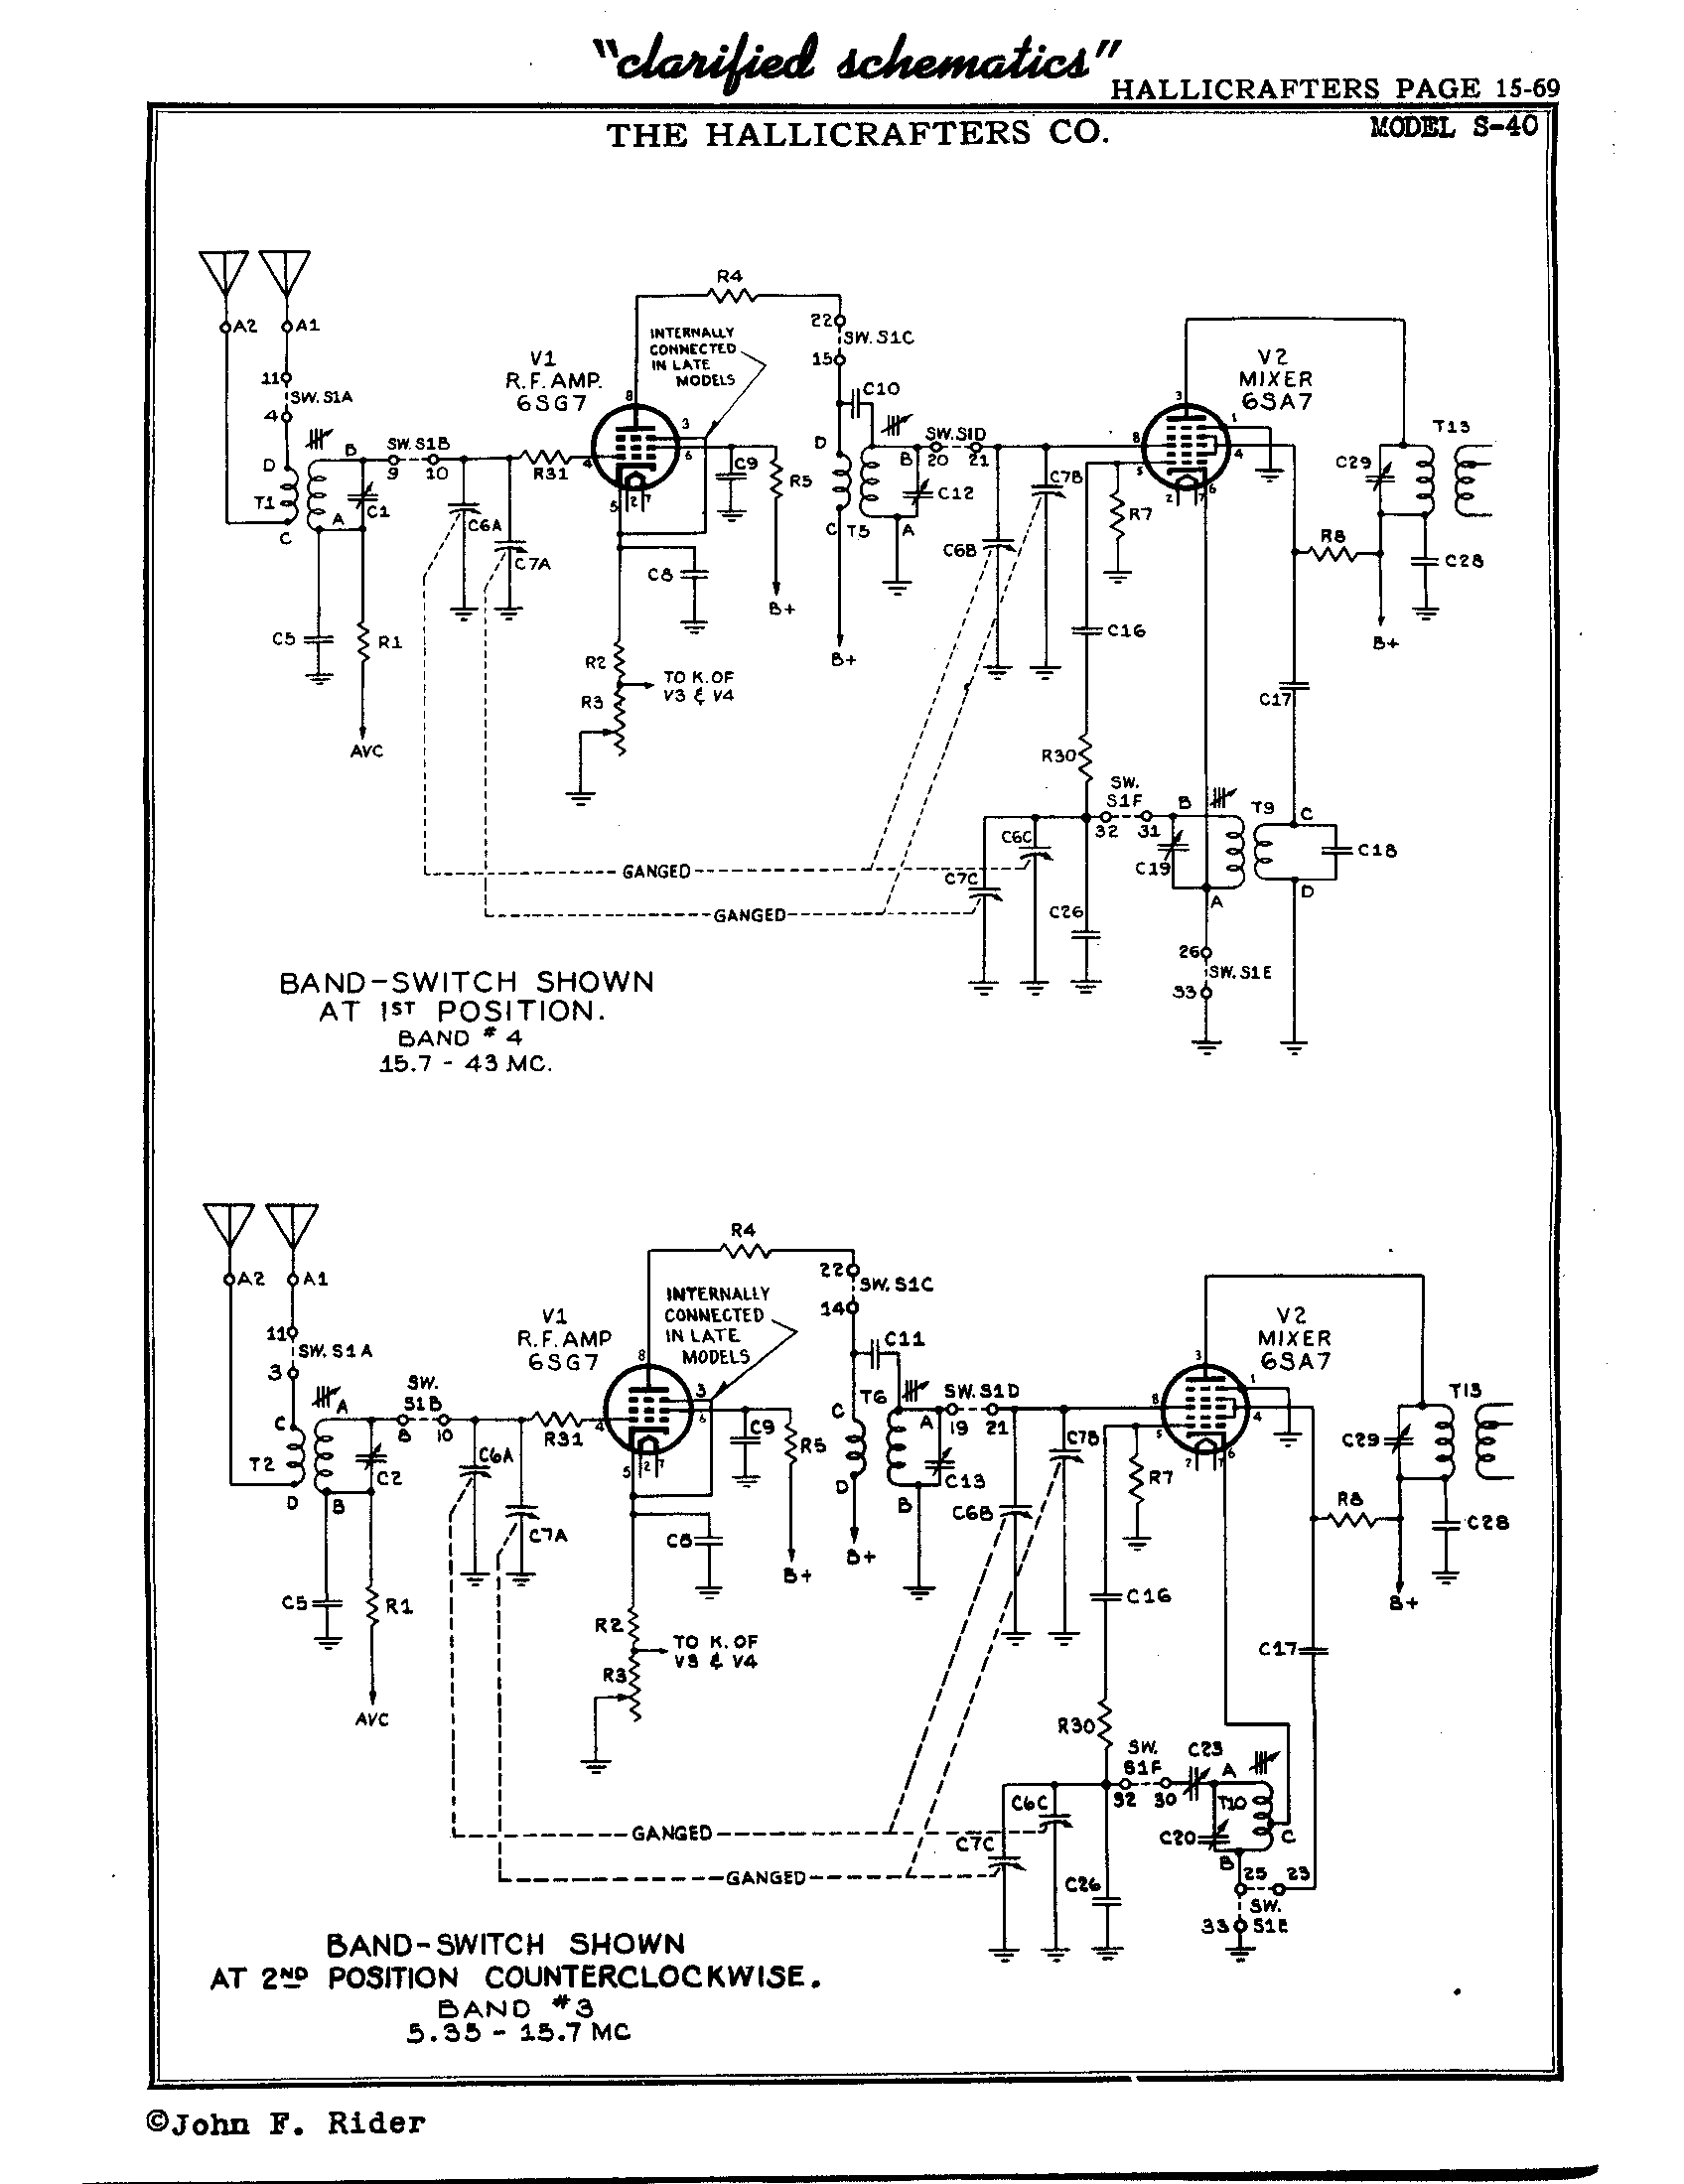 Schematic rh clearwaterclarification array hallicrafters inc s 40 antique electronic supply rh tubesandmore